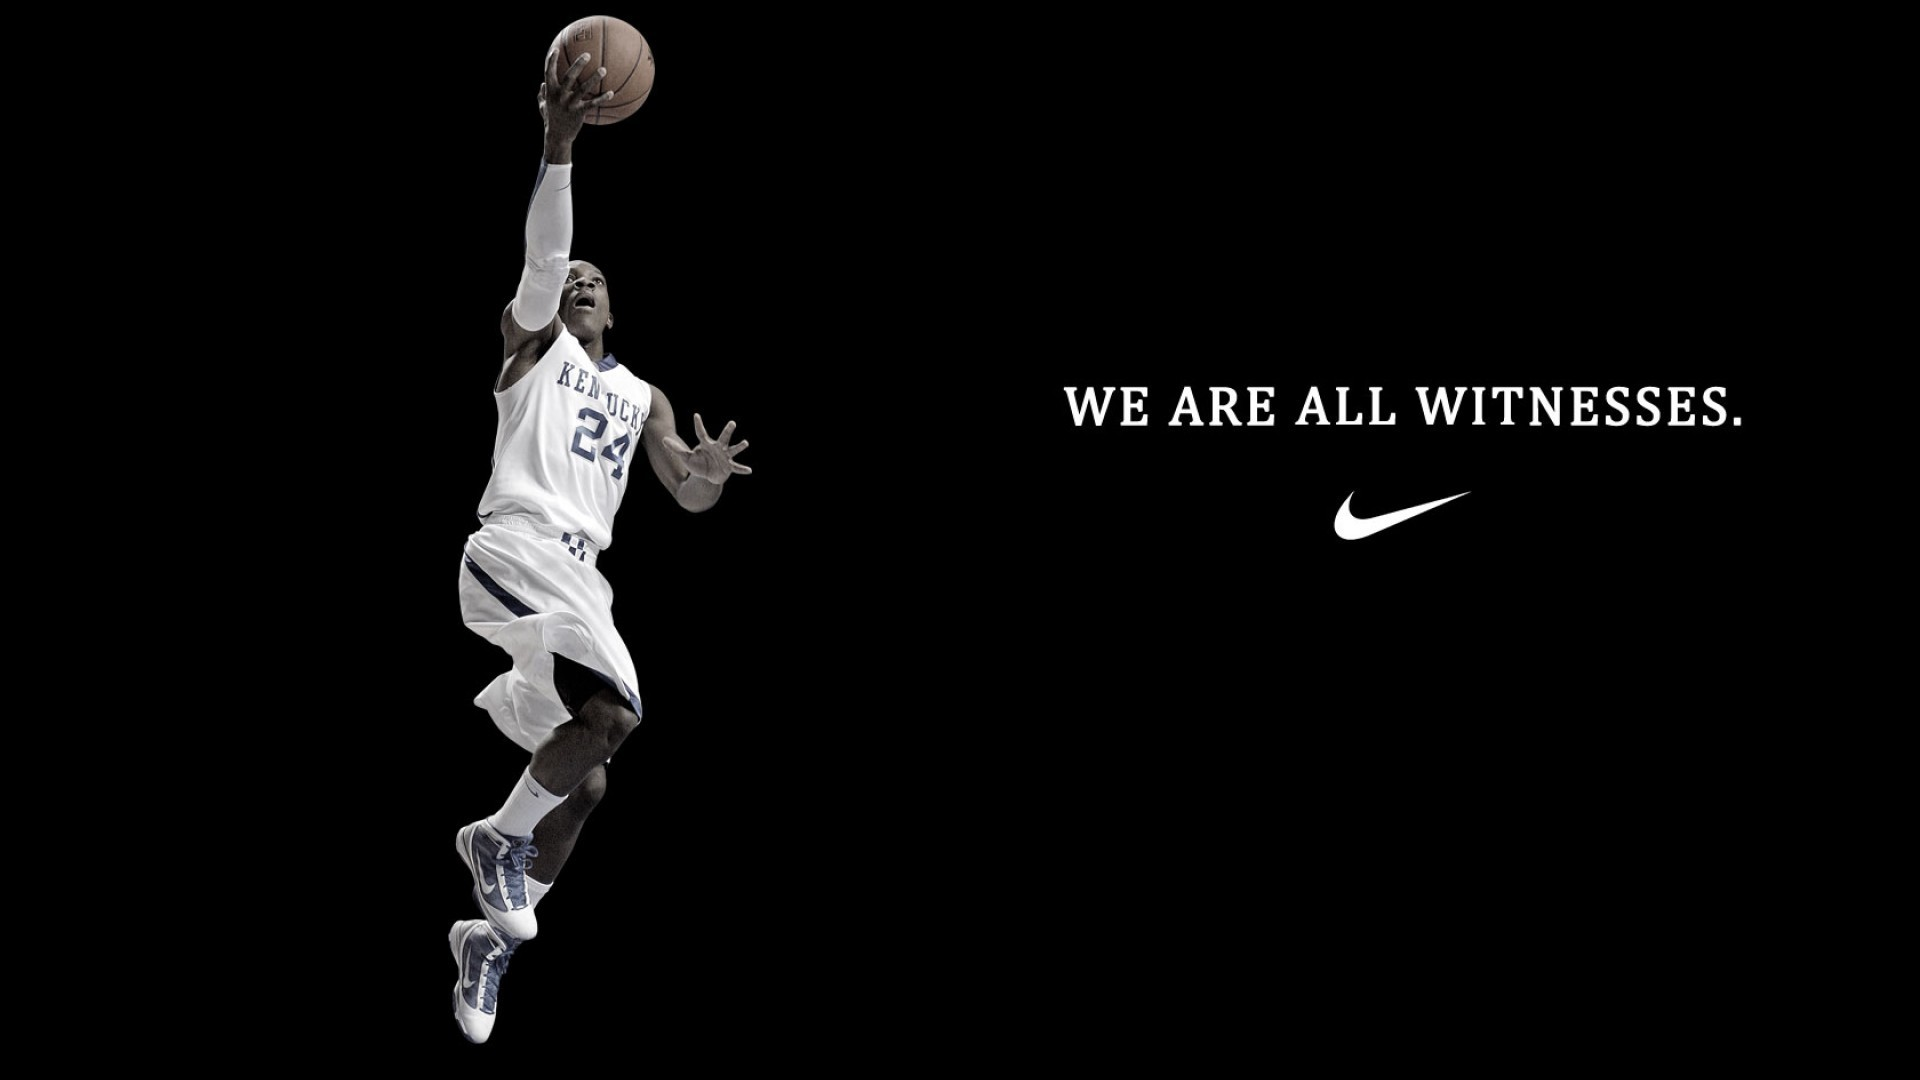 Res: 1920x1080, Nike Basketball wallpaper